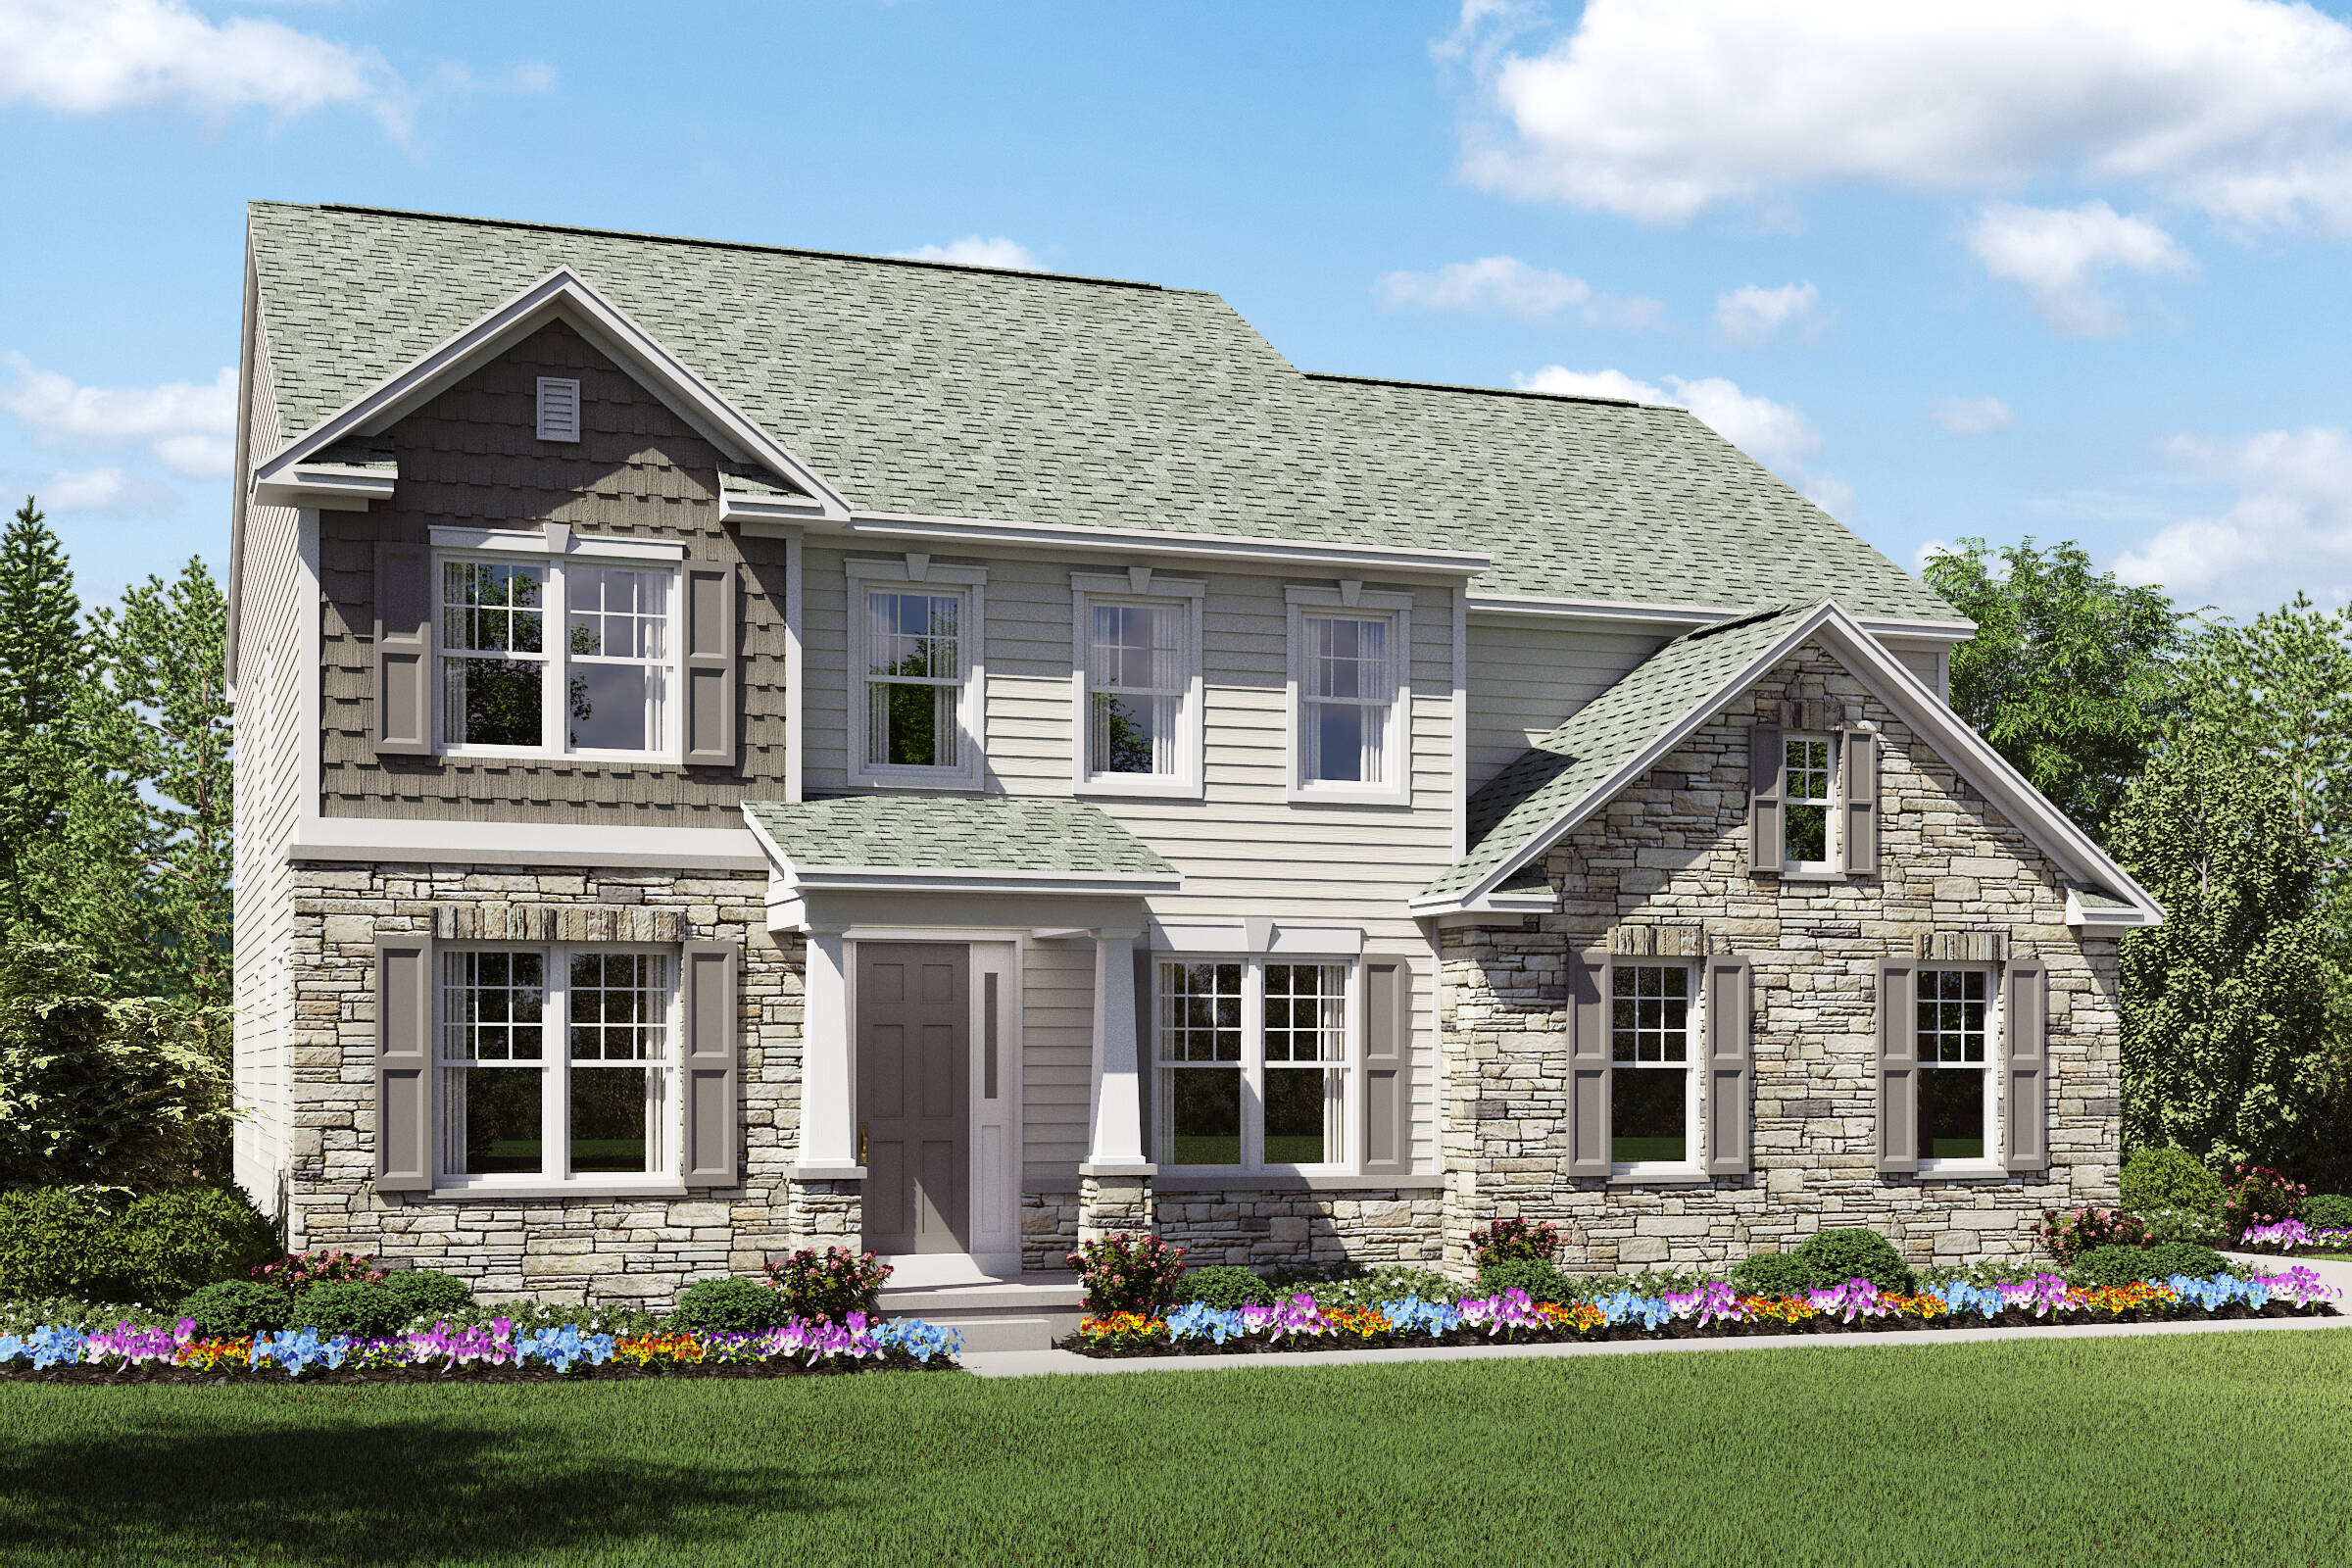 Beaumont DT SL new home designs k hovnanian homes